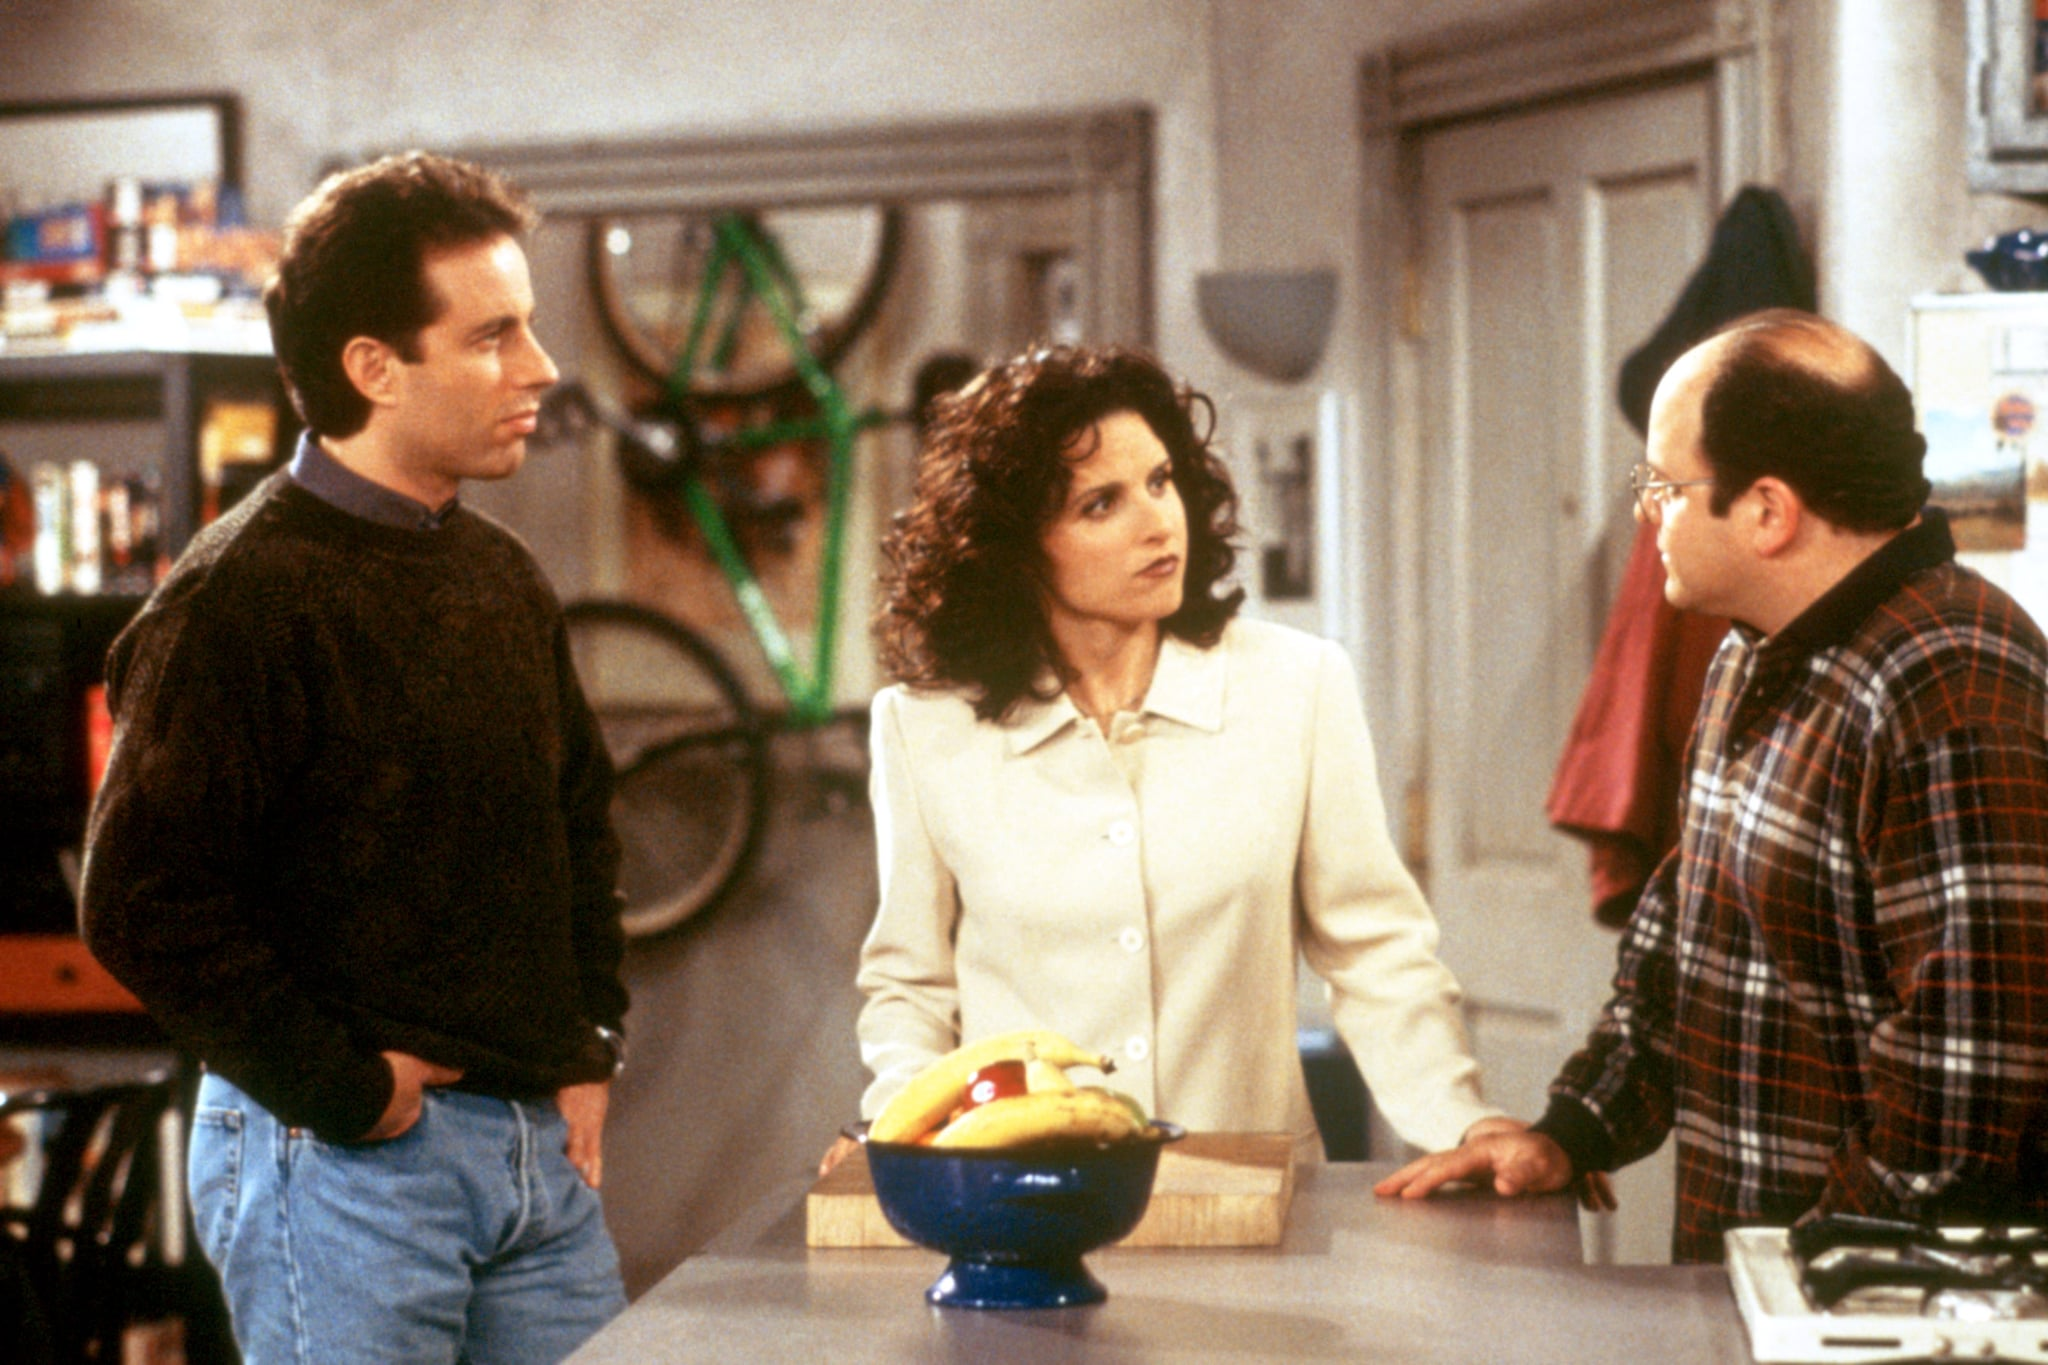 SEINFELD, Jerry Seinfeld, Julia Louis-Dreyfus, Jason Alexander, Season 9, 1990 - 1998. (c) Columbia TriStar Television/ Courtesy: Everett Collection.